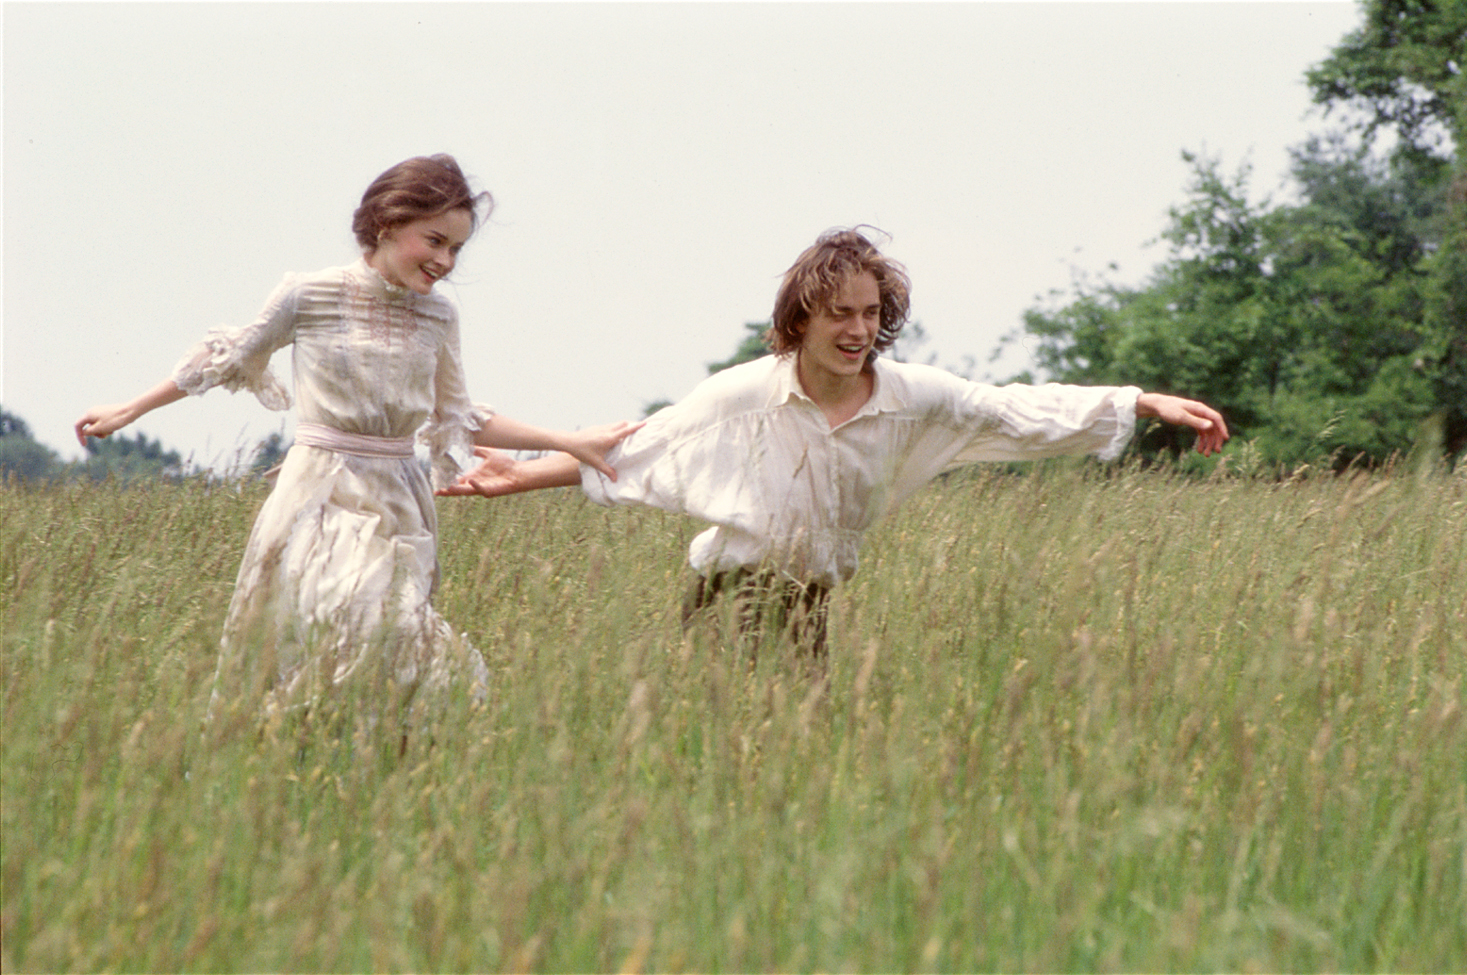 https://i2.wp.com/static.cinemagia.ro/img/db/movie/00/28/03/tuck-everlasting-425977l.jpg